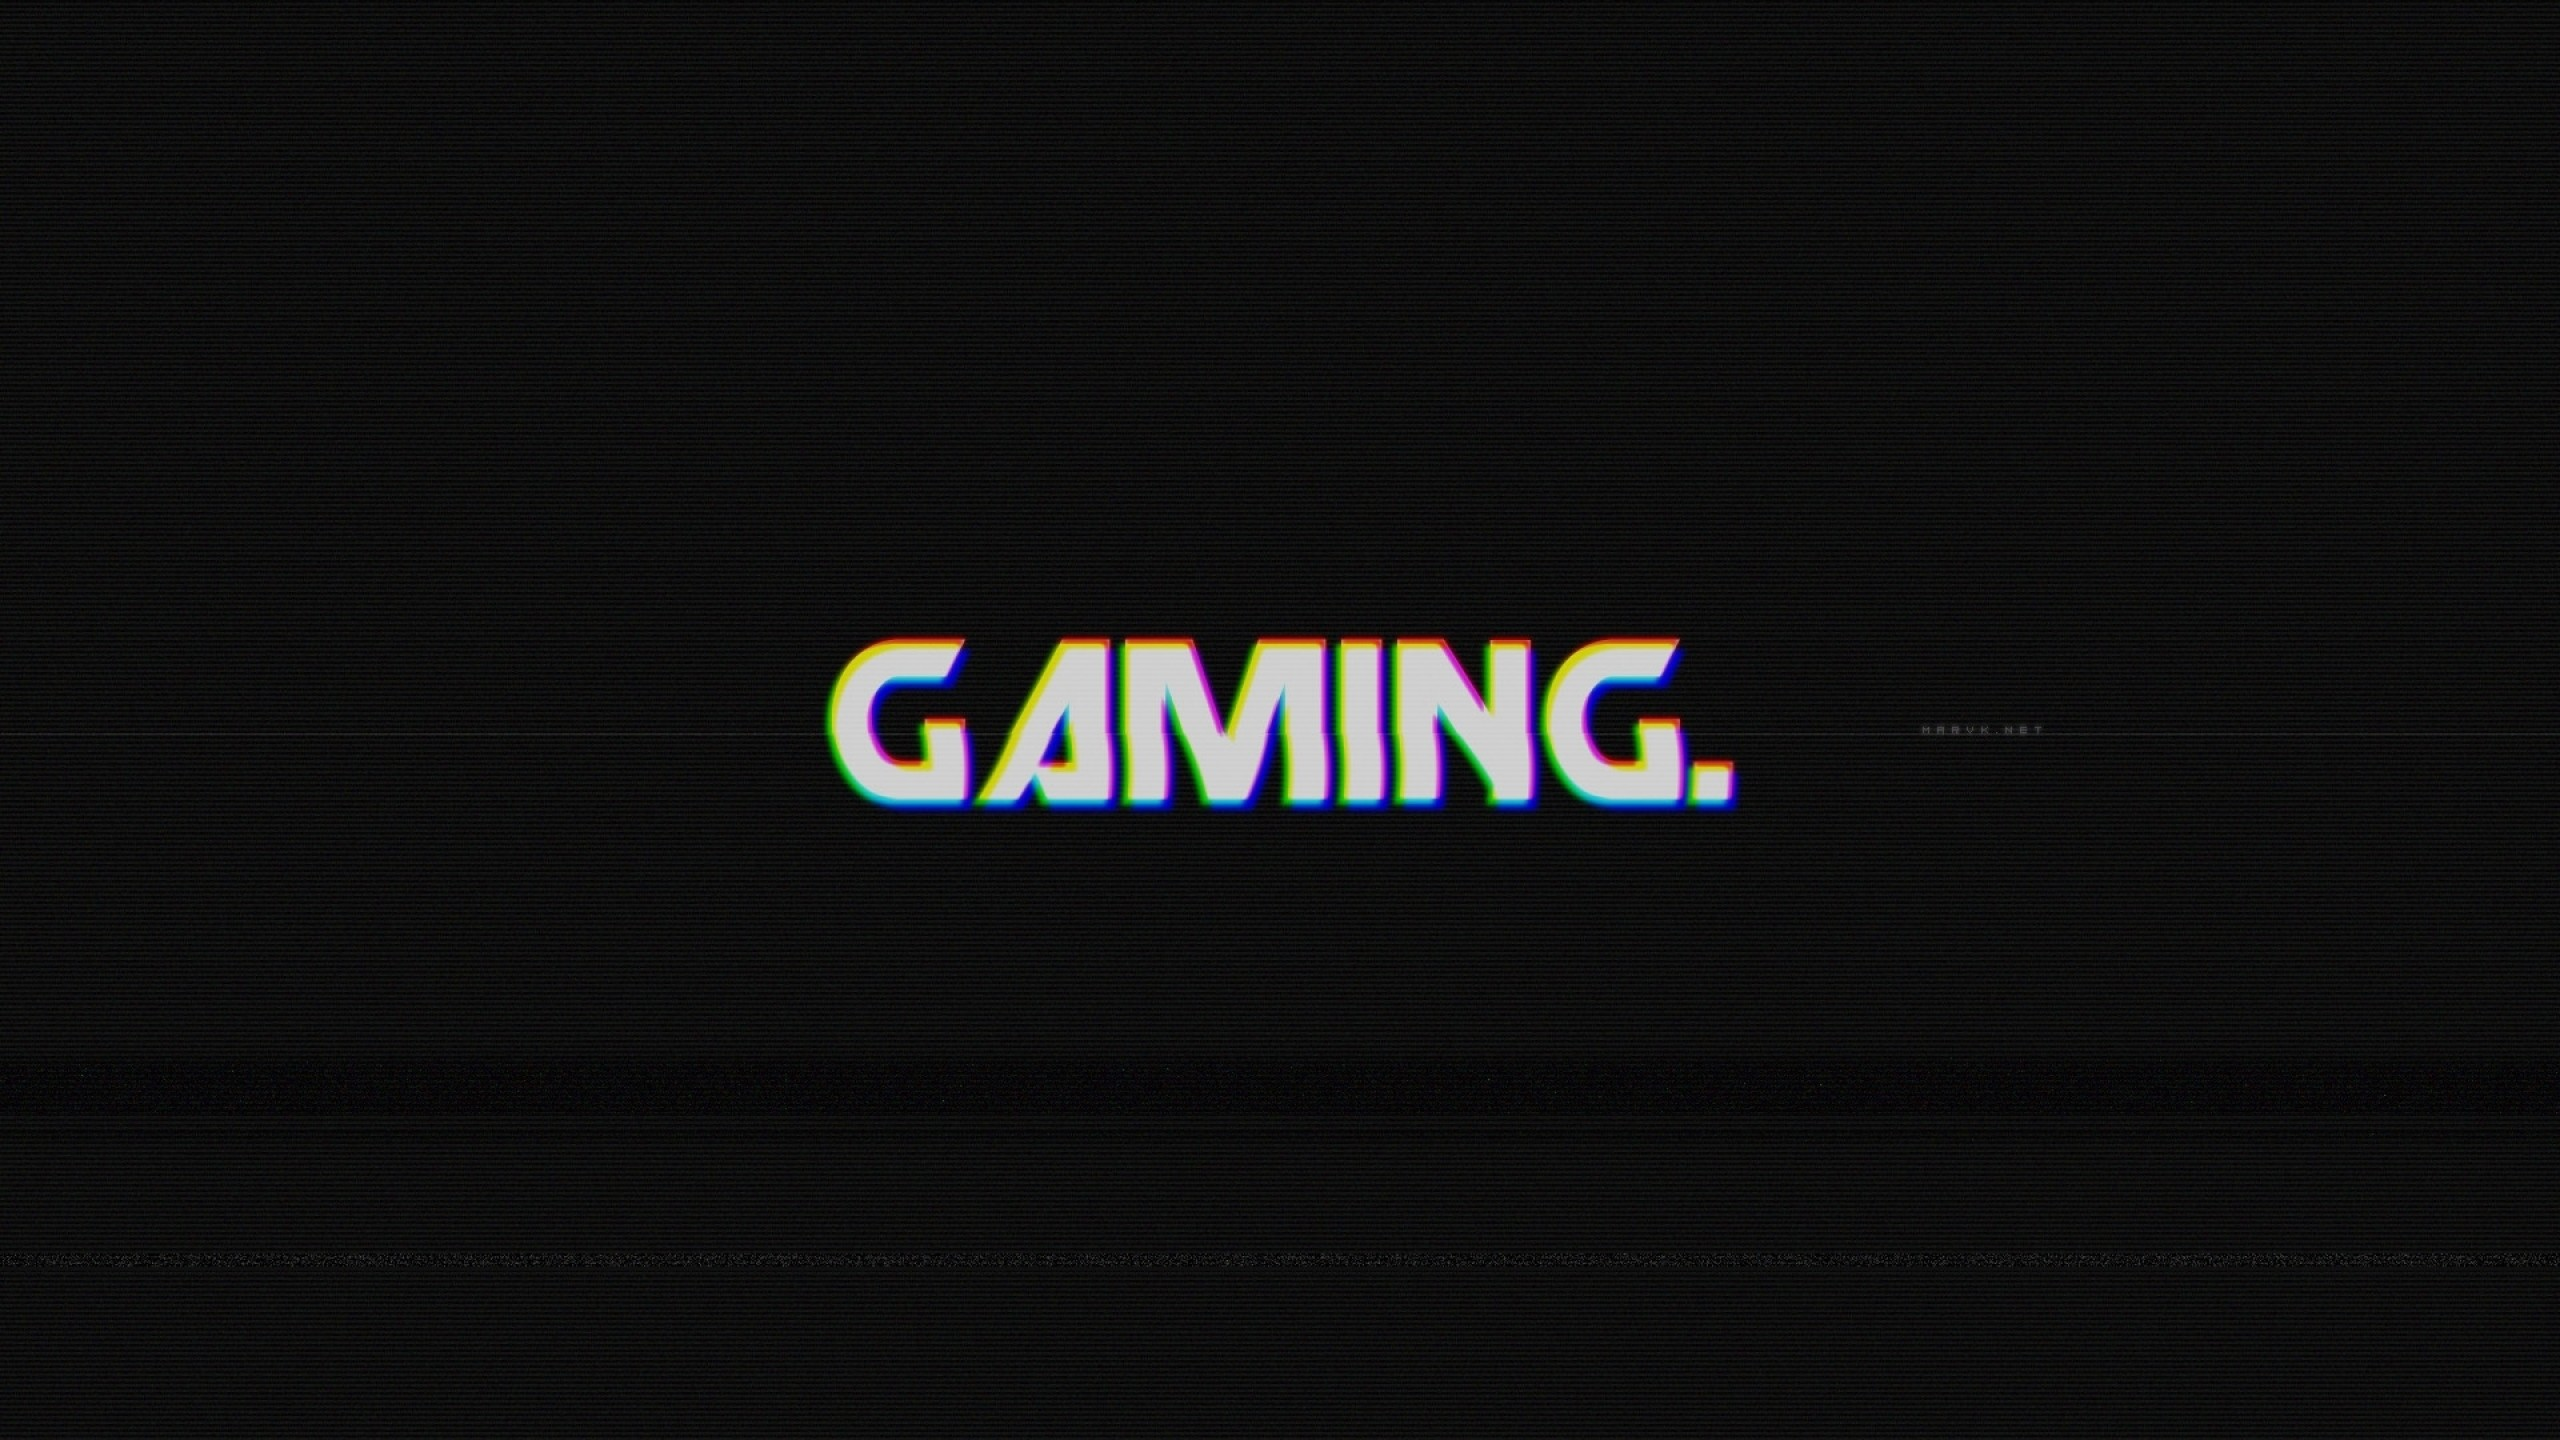 Gaming 2560x1440   Wallpaper   ImgPrix 2560x1440